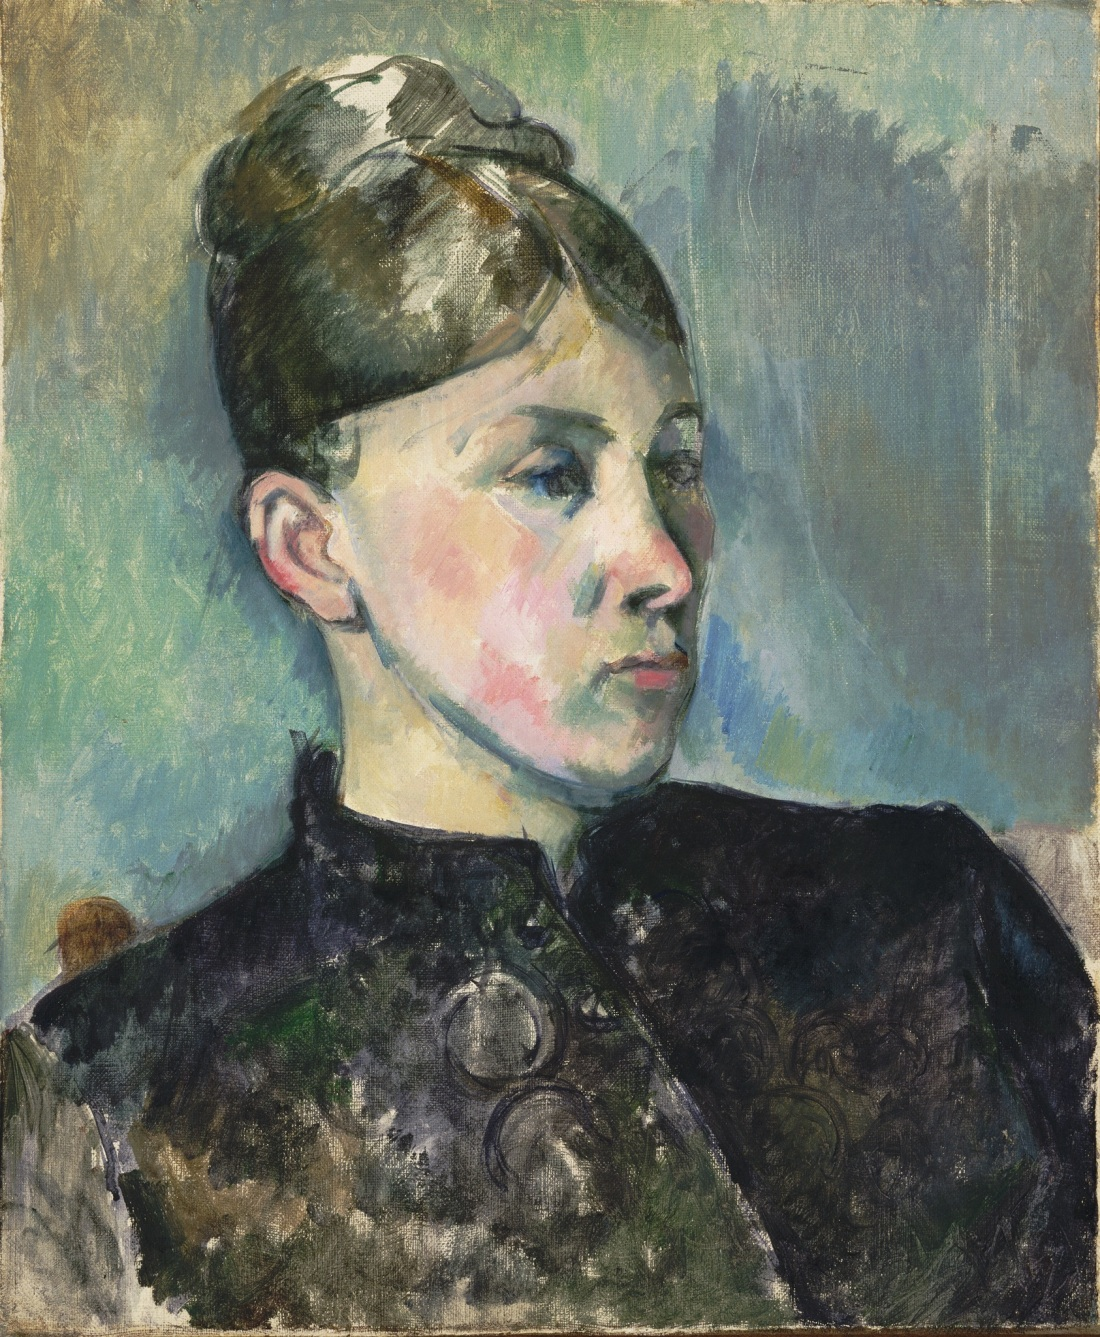 Paul Cezanne, Portrait of Madame Cezanne, 1886-87. Collection of the Philadelphia Museum of Art.